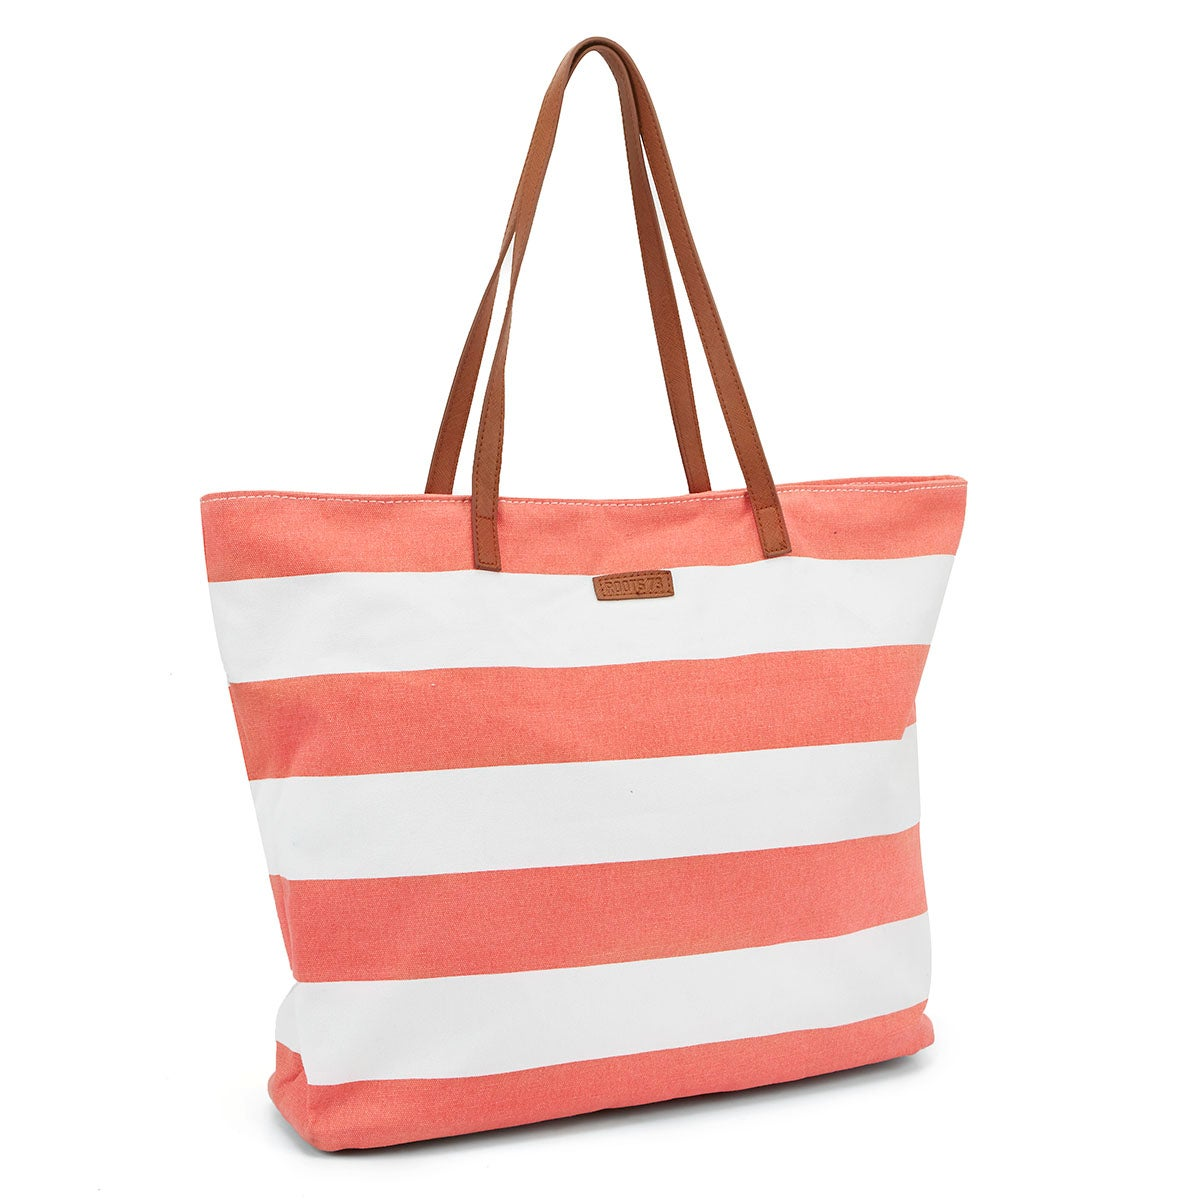 Lds coral/white large striped tote bag